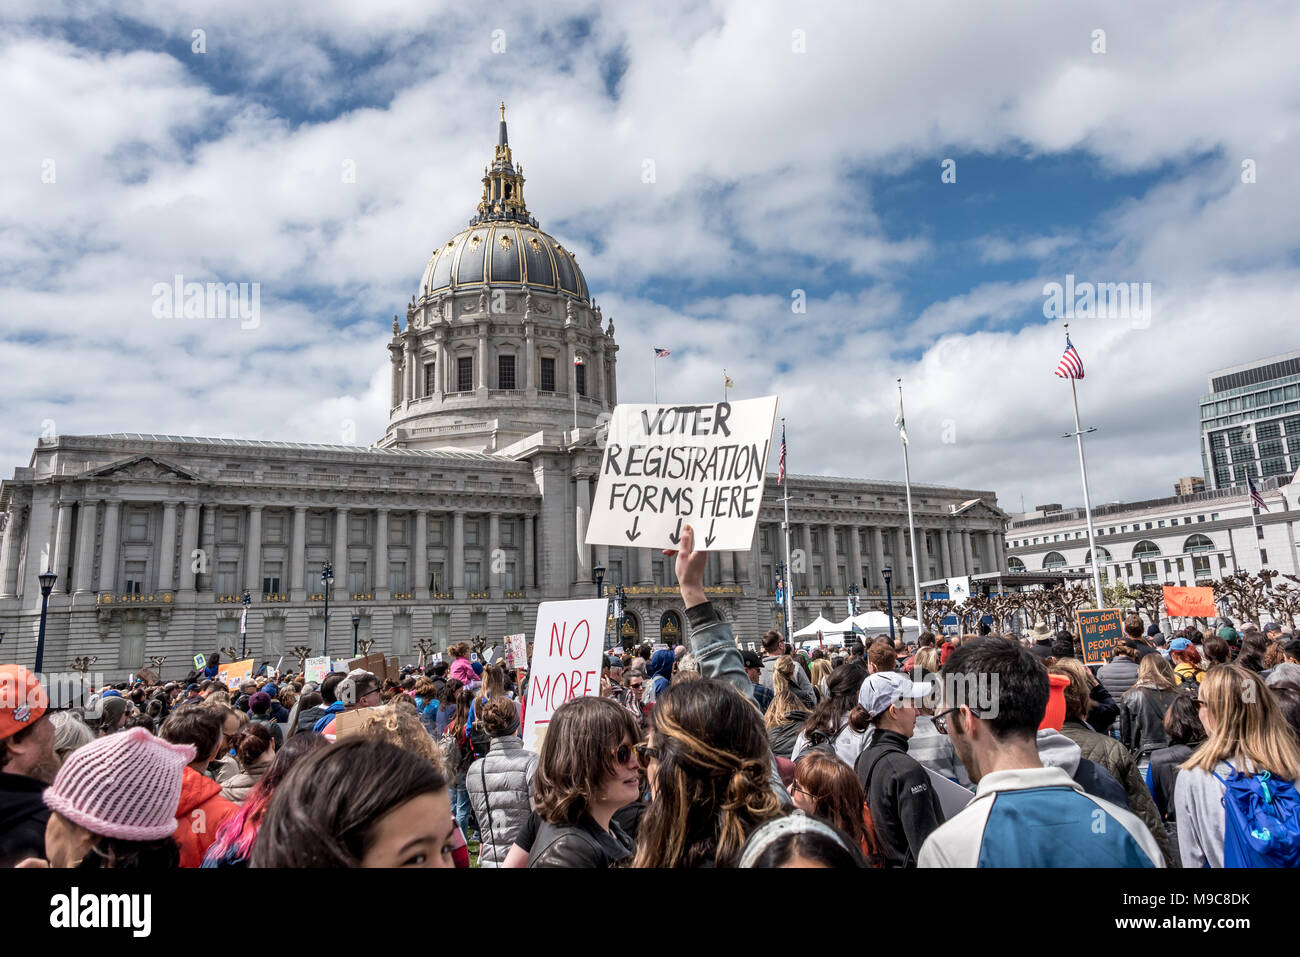 San Francisco, USA. 24th March, 2018. March for Our Lives rally and march to call for gun control and end gun violence; amid the crowd a sign reads 'Voter registration forms here' with arrows. Mobilizing new, young voters is a common theme in the student-led movement. Shelly Rivoli/Alamy Live News - Stock Image